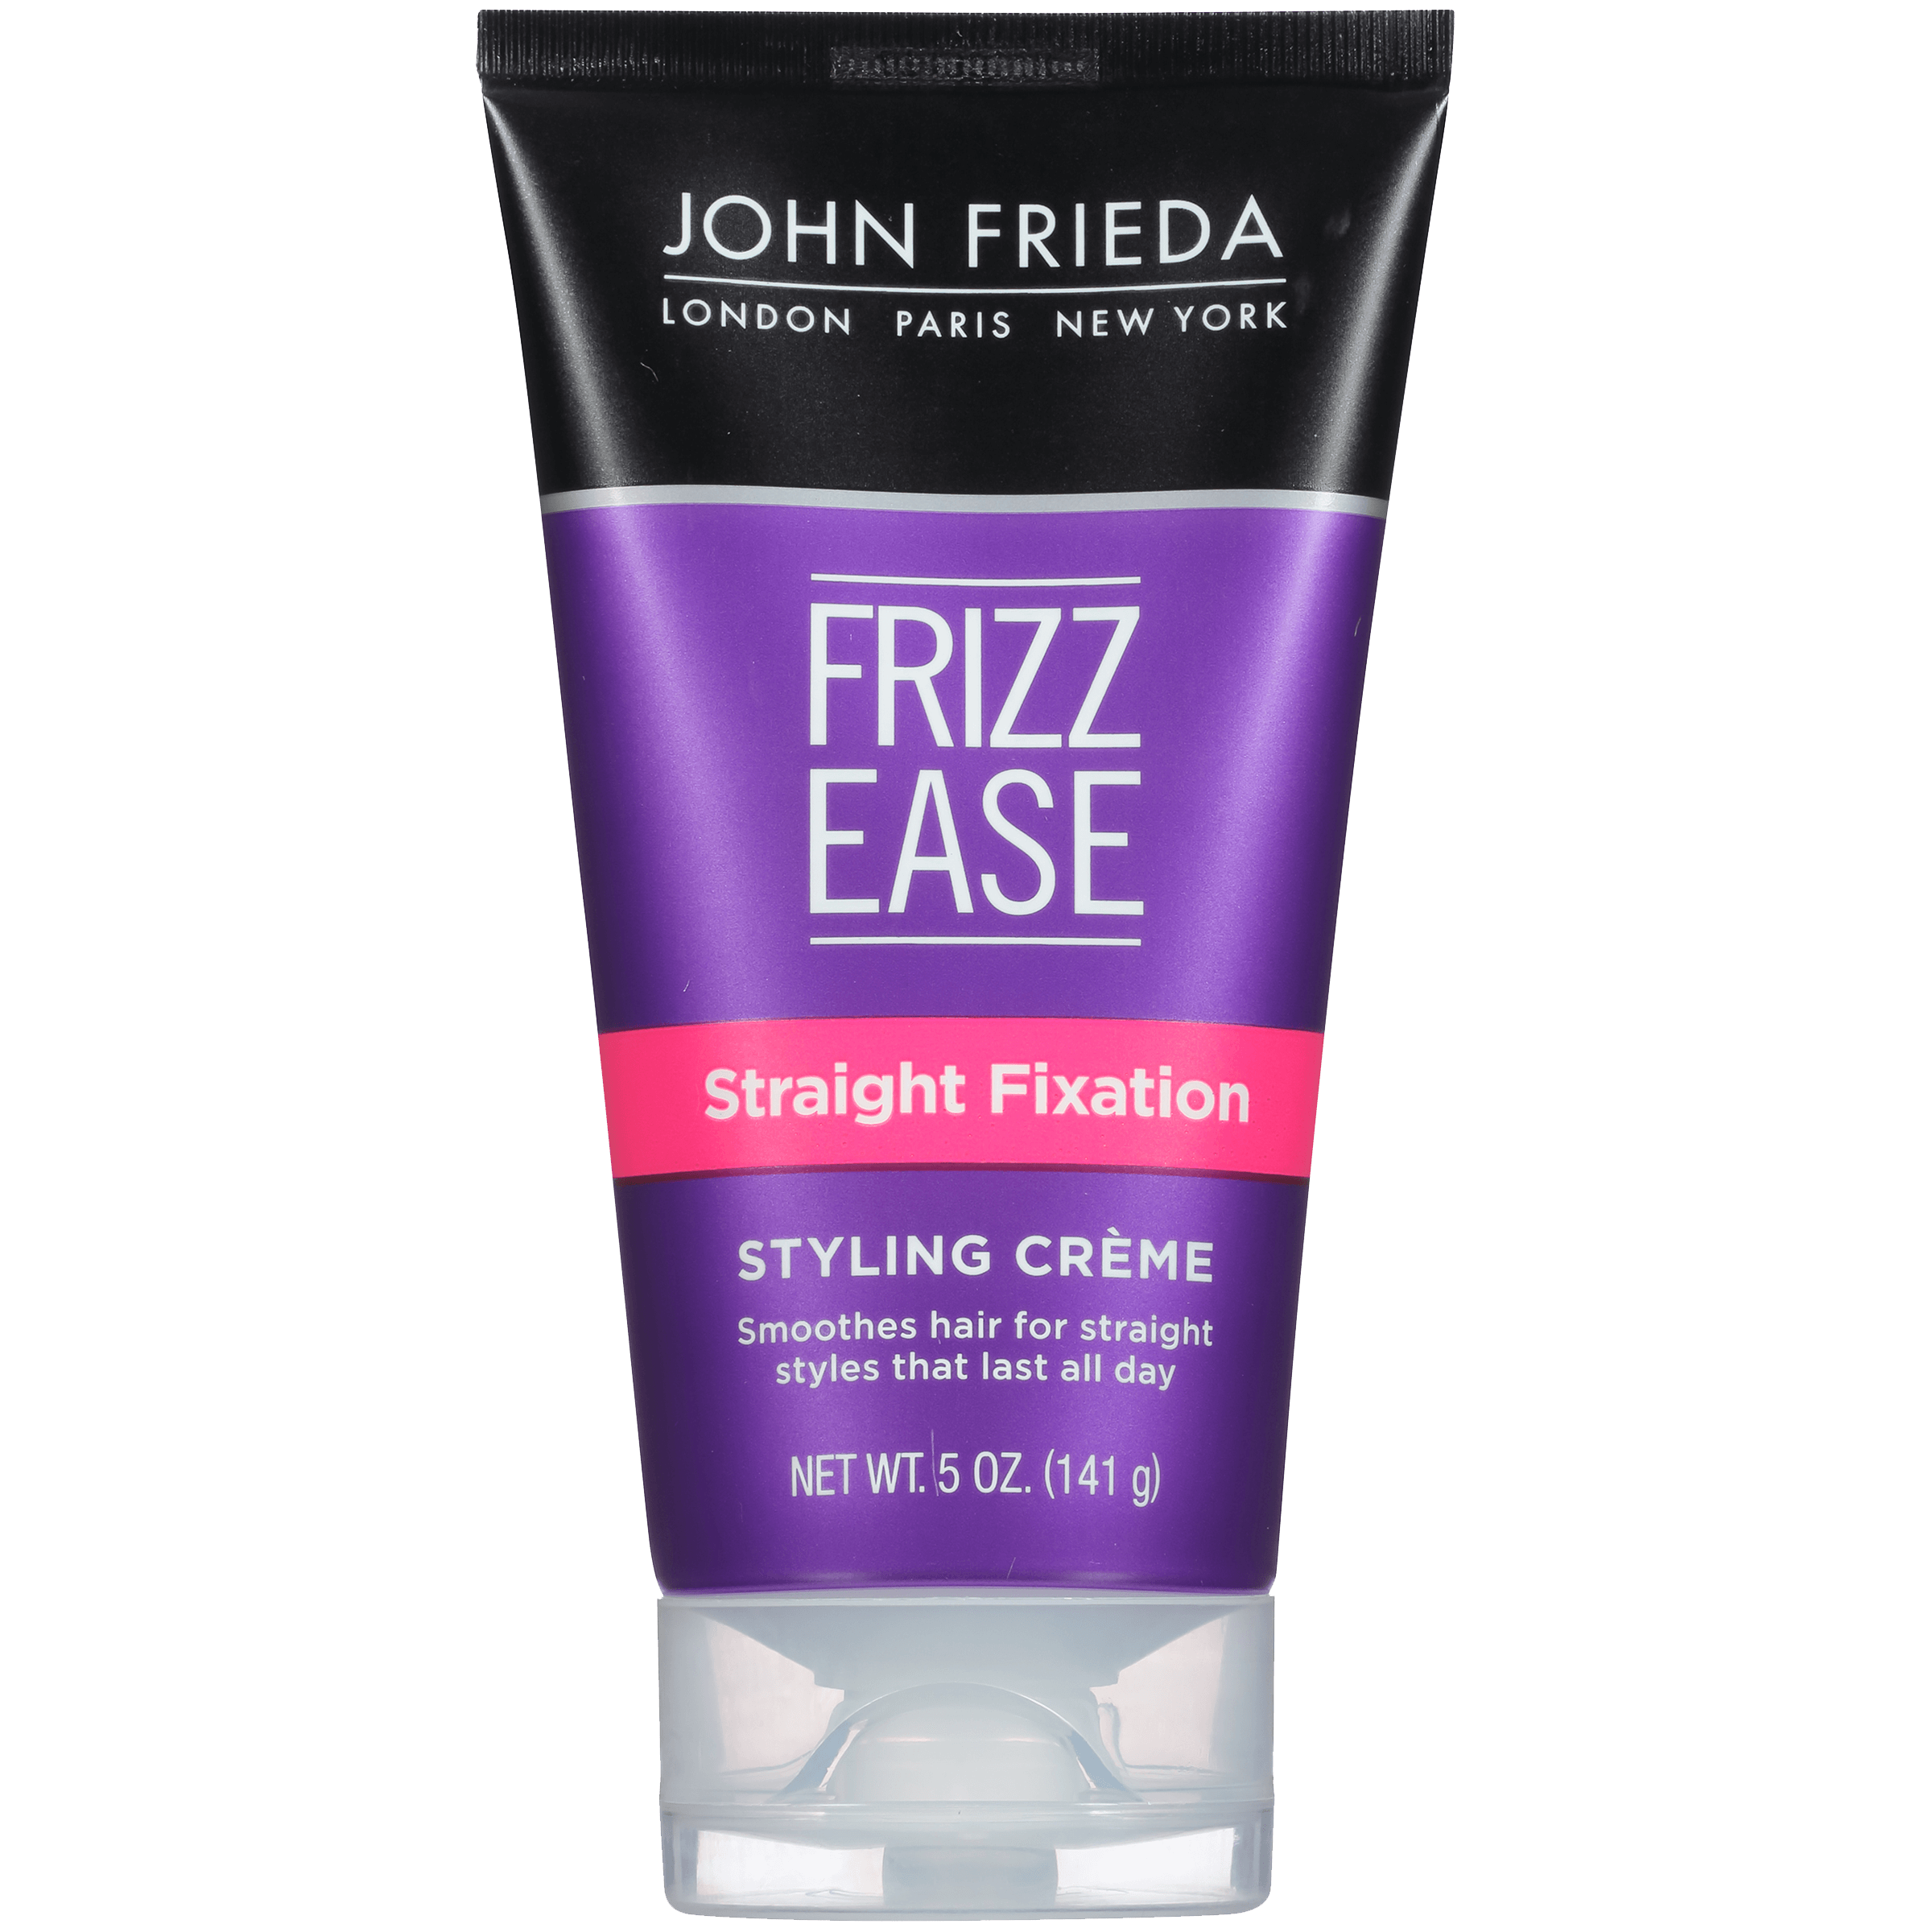 Frizz Ease Straight Fixation